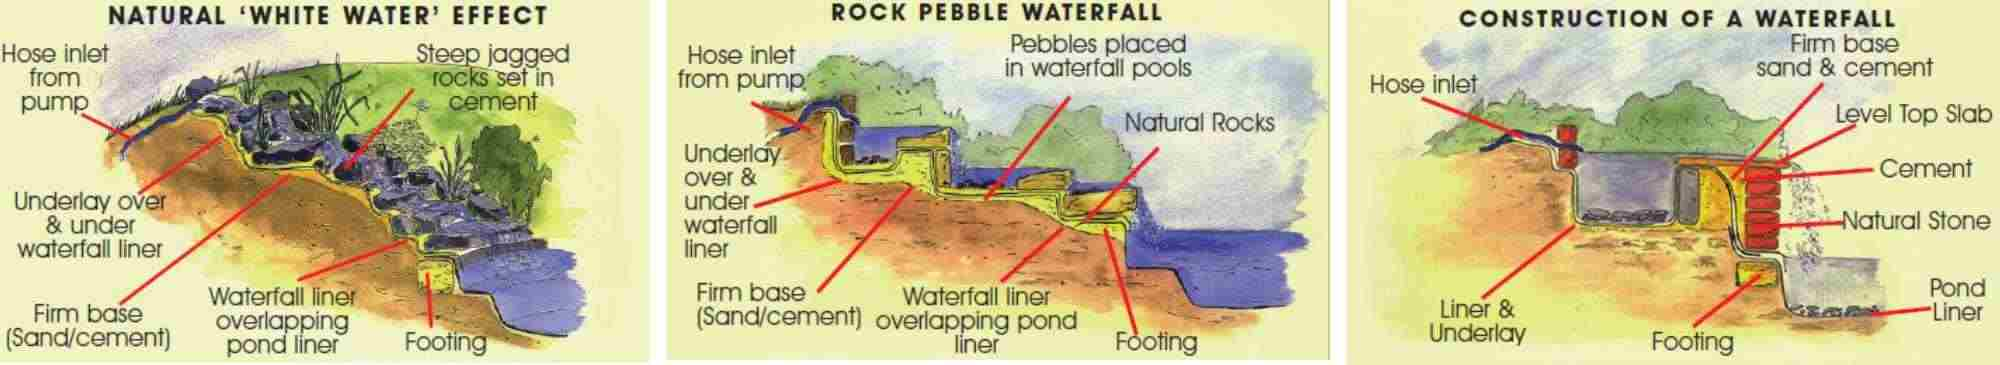 waterfall-ideas-for-self-build.jpg